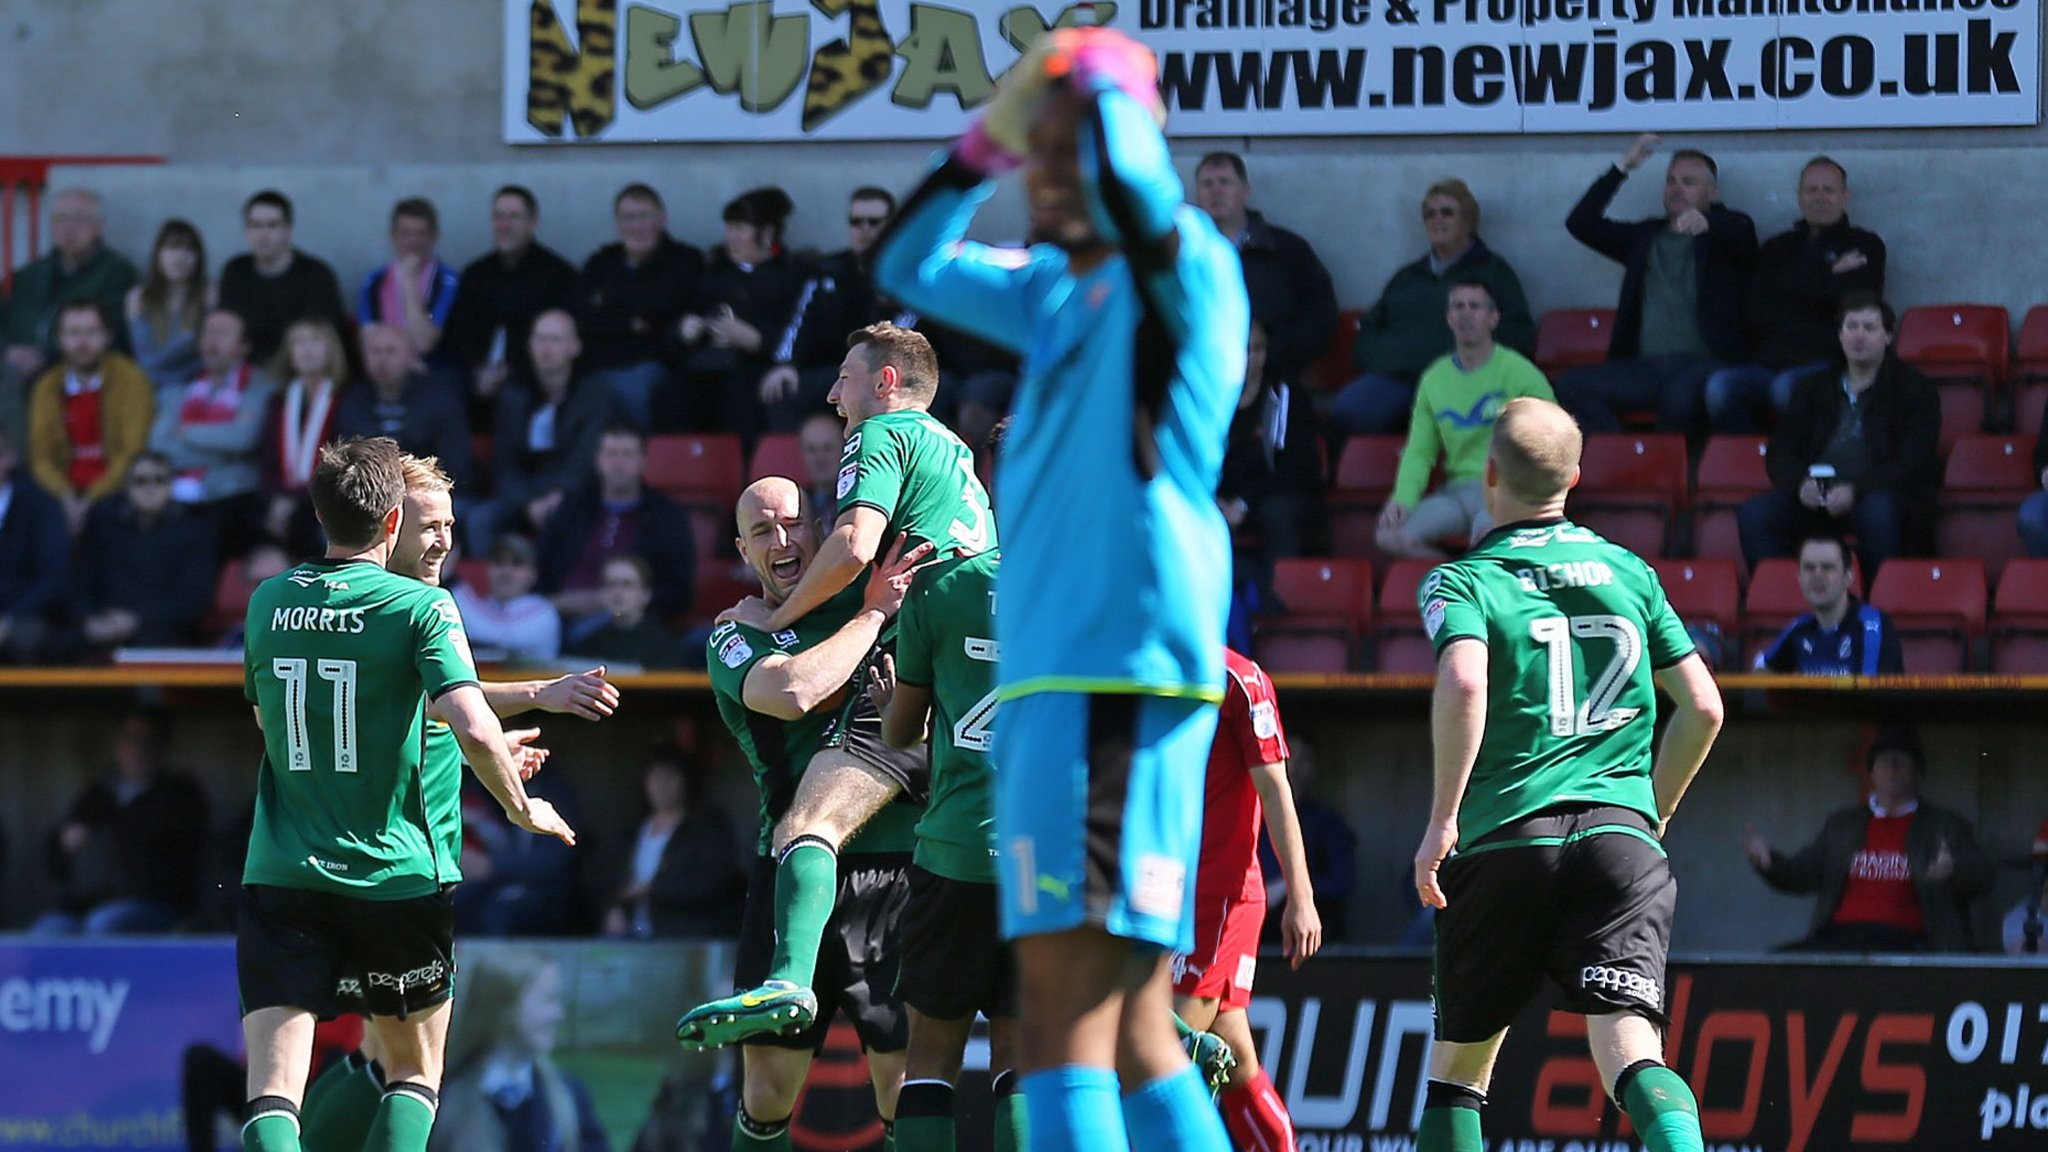 Burying bad news? Swindon avoid mentioning they are relegated